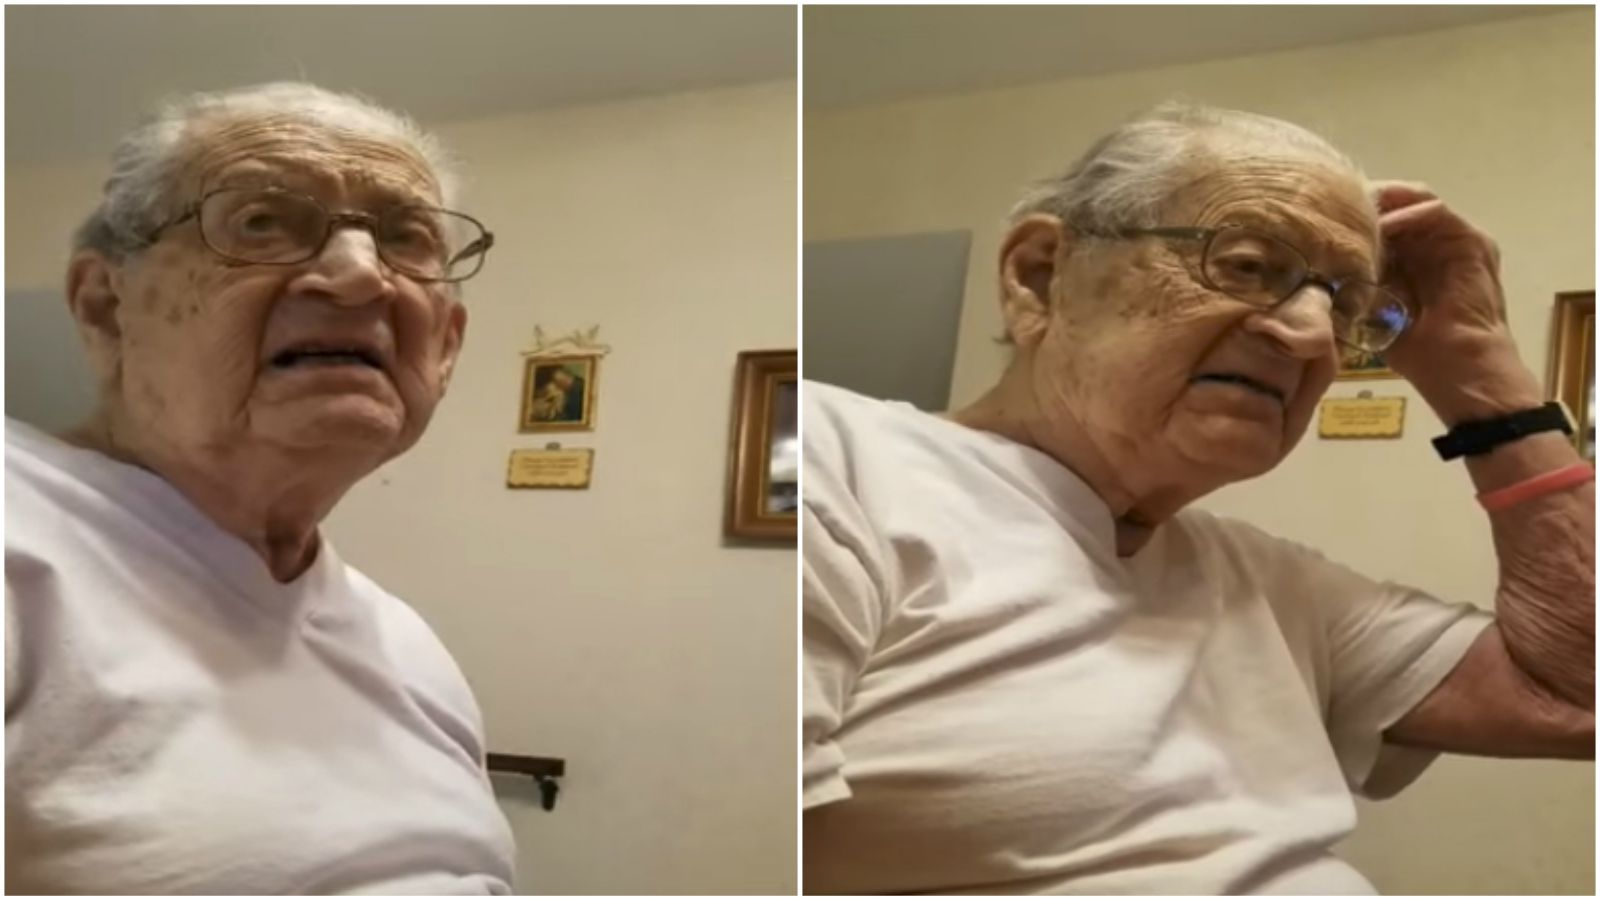 Son Asks His 98-Year-Old Dad How Old He Is. His Reaction Will Have You LOL!